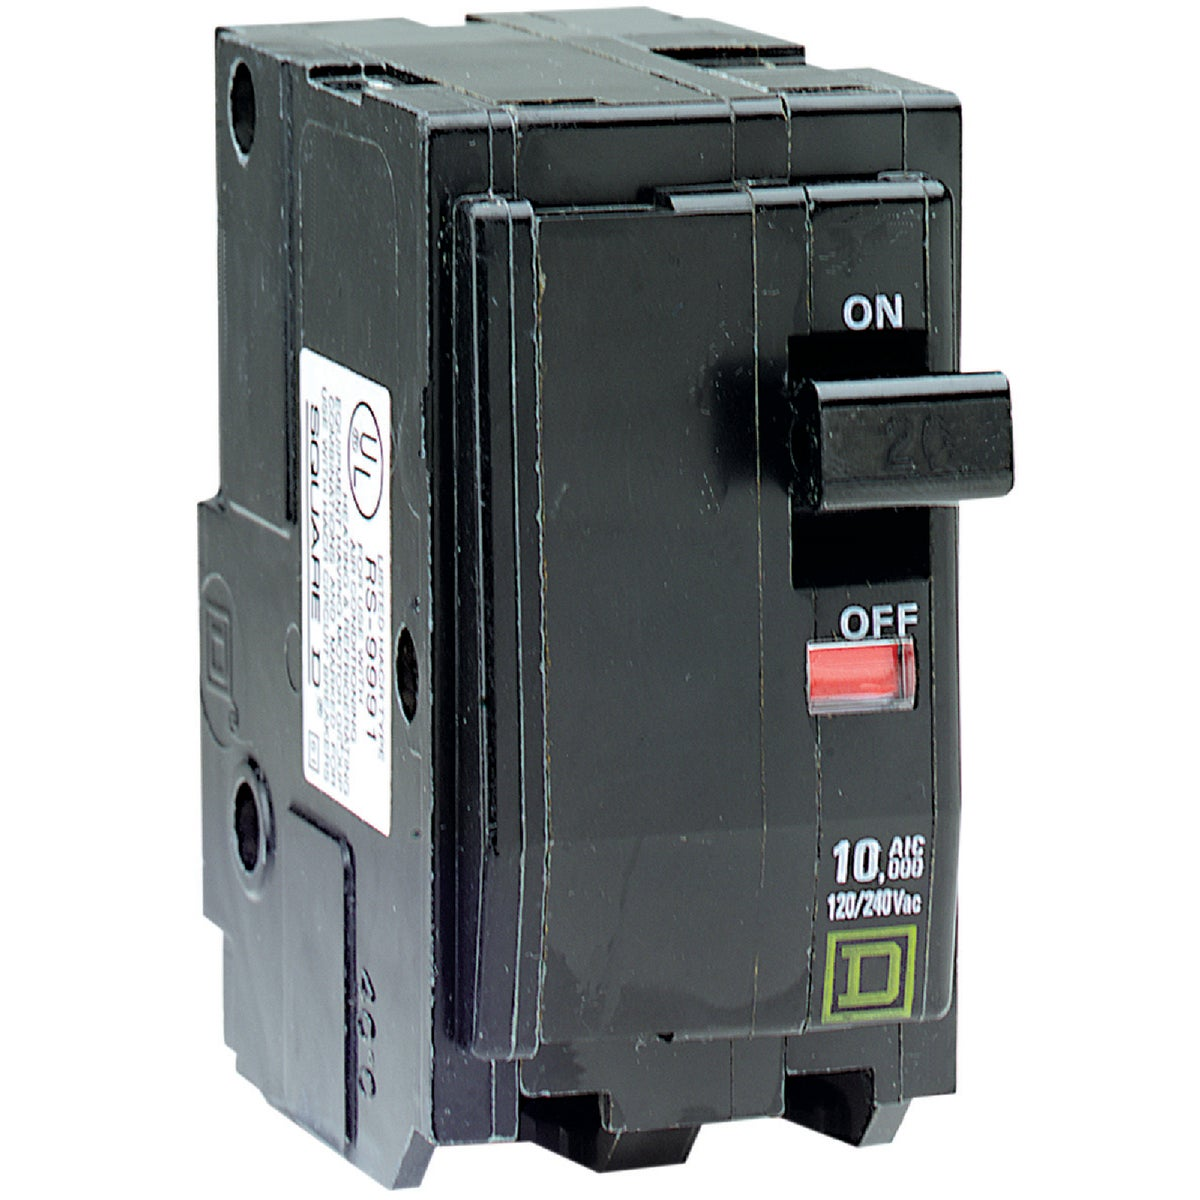 40A 2P CIRCUIT BREAKER - QO240CP by Square D Co